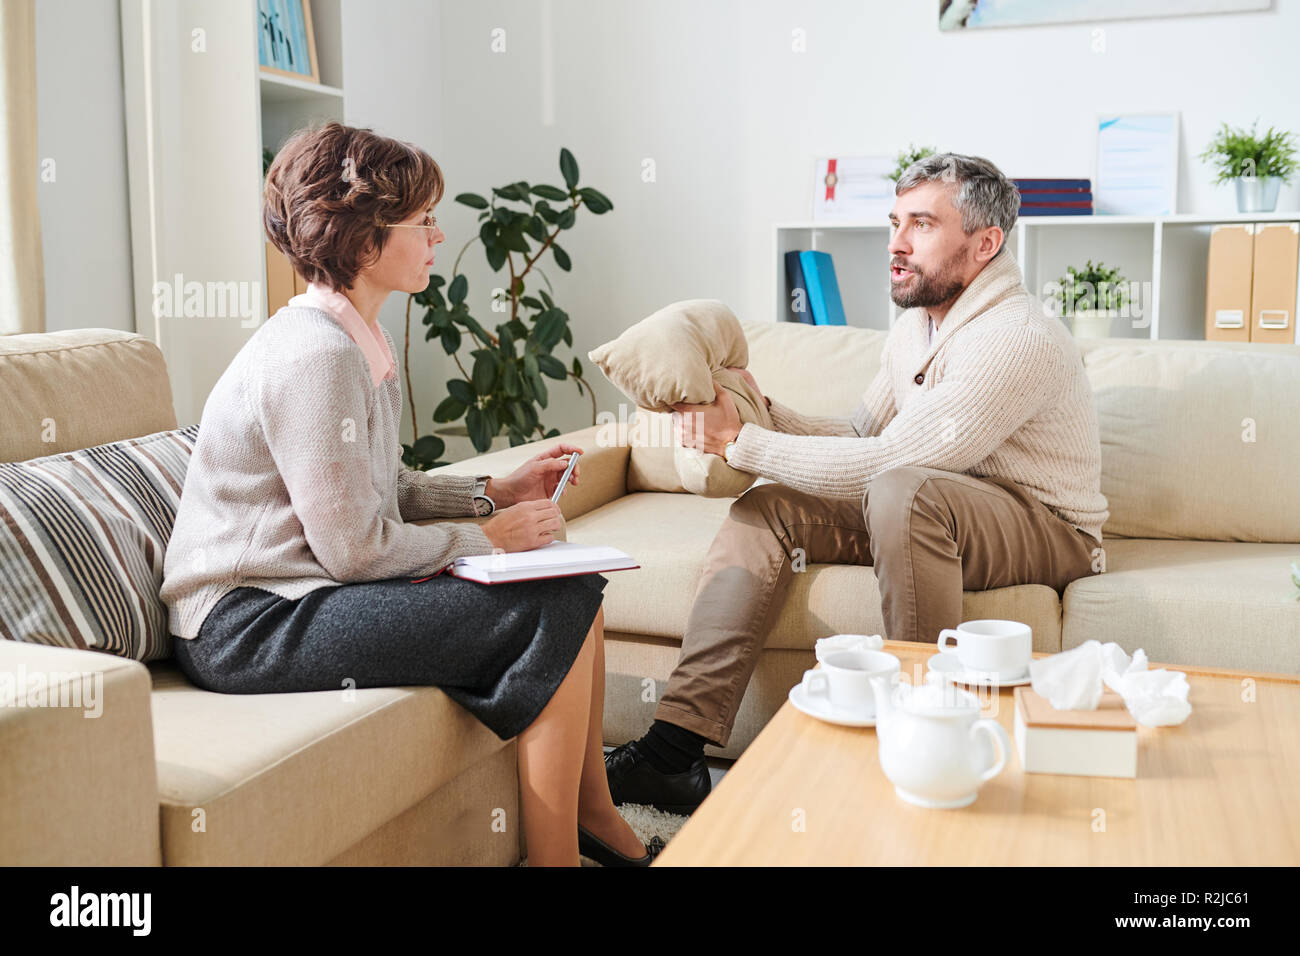 Man full of hate at therapy session - Stock Image